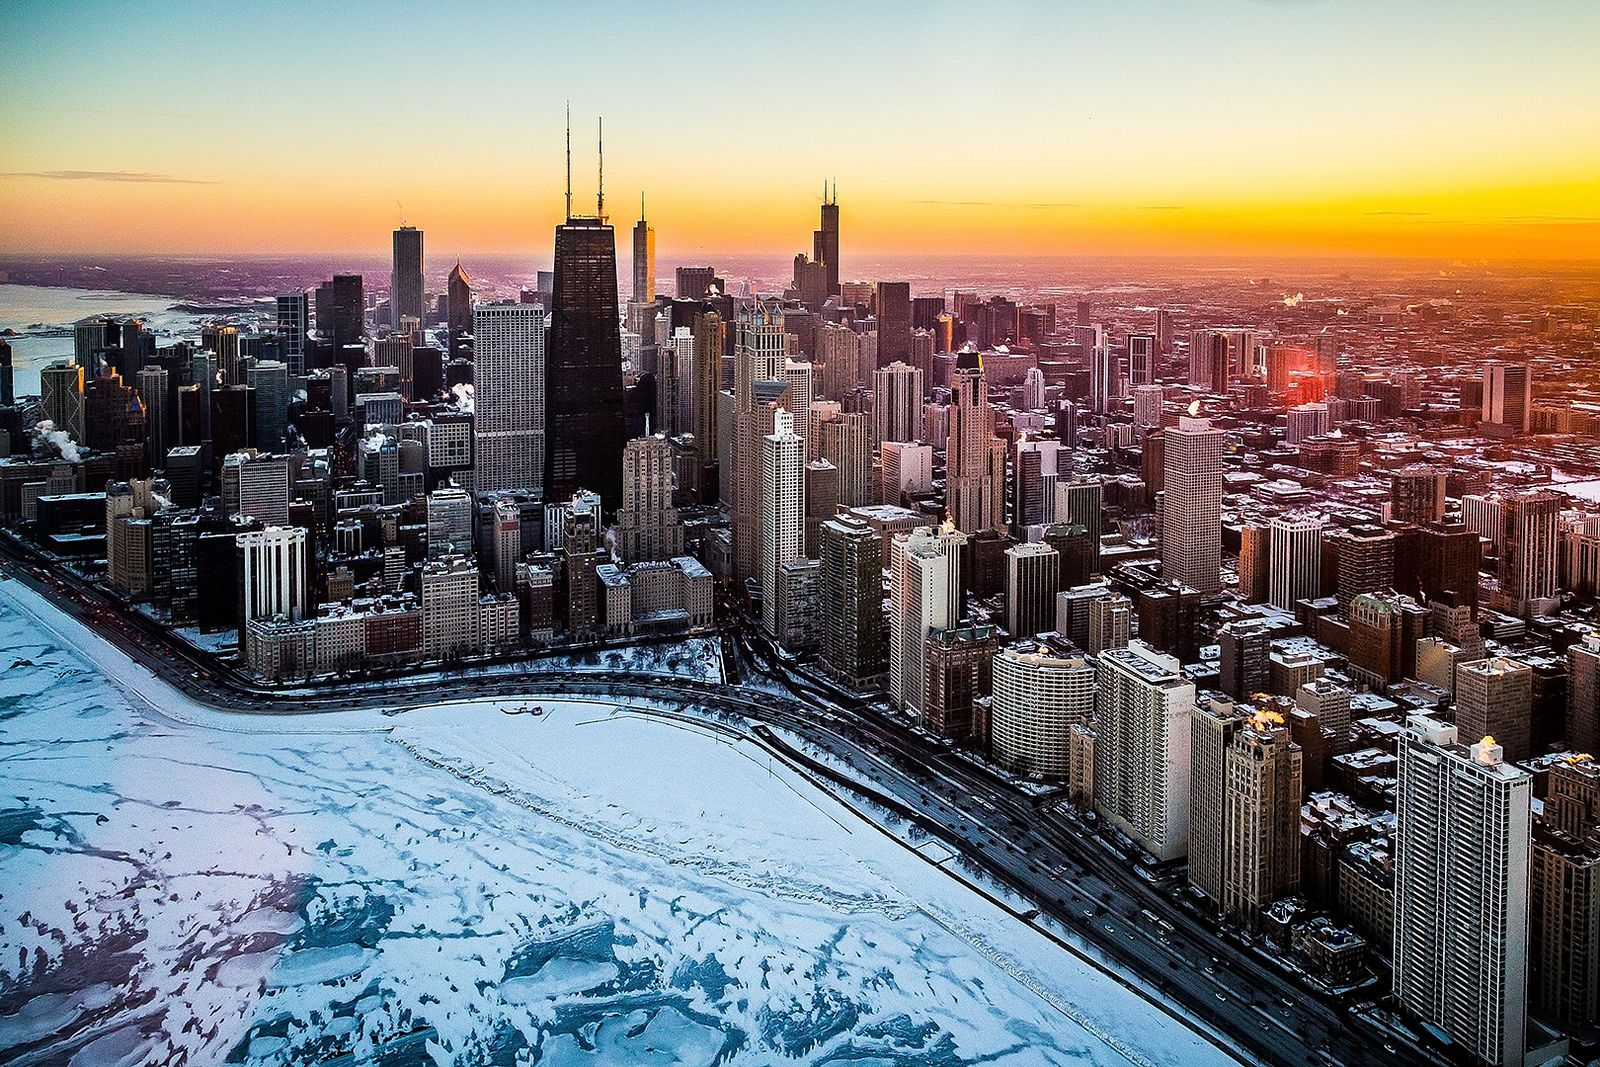 Chicago Winter Sunset Winter Sunset Chicago Winter City Landscape